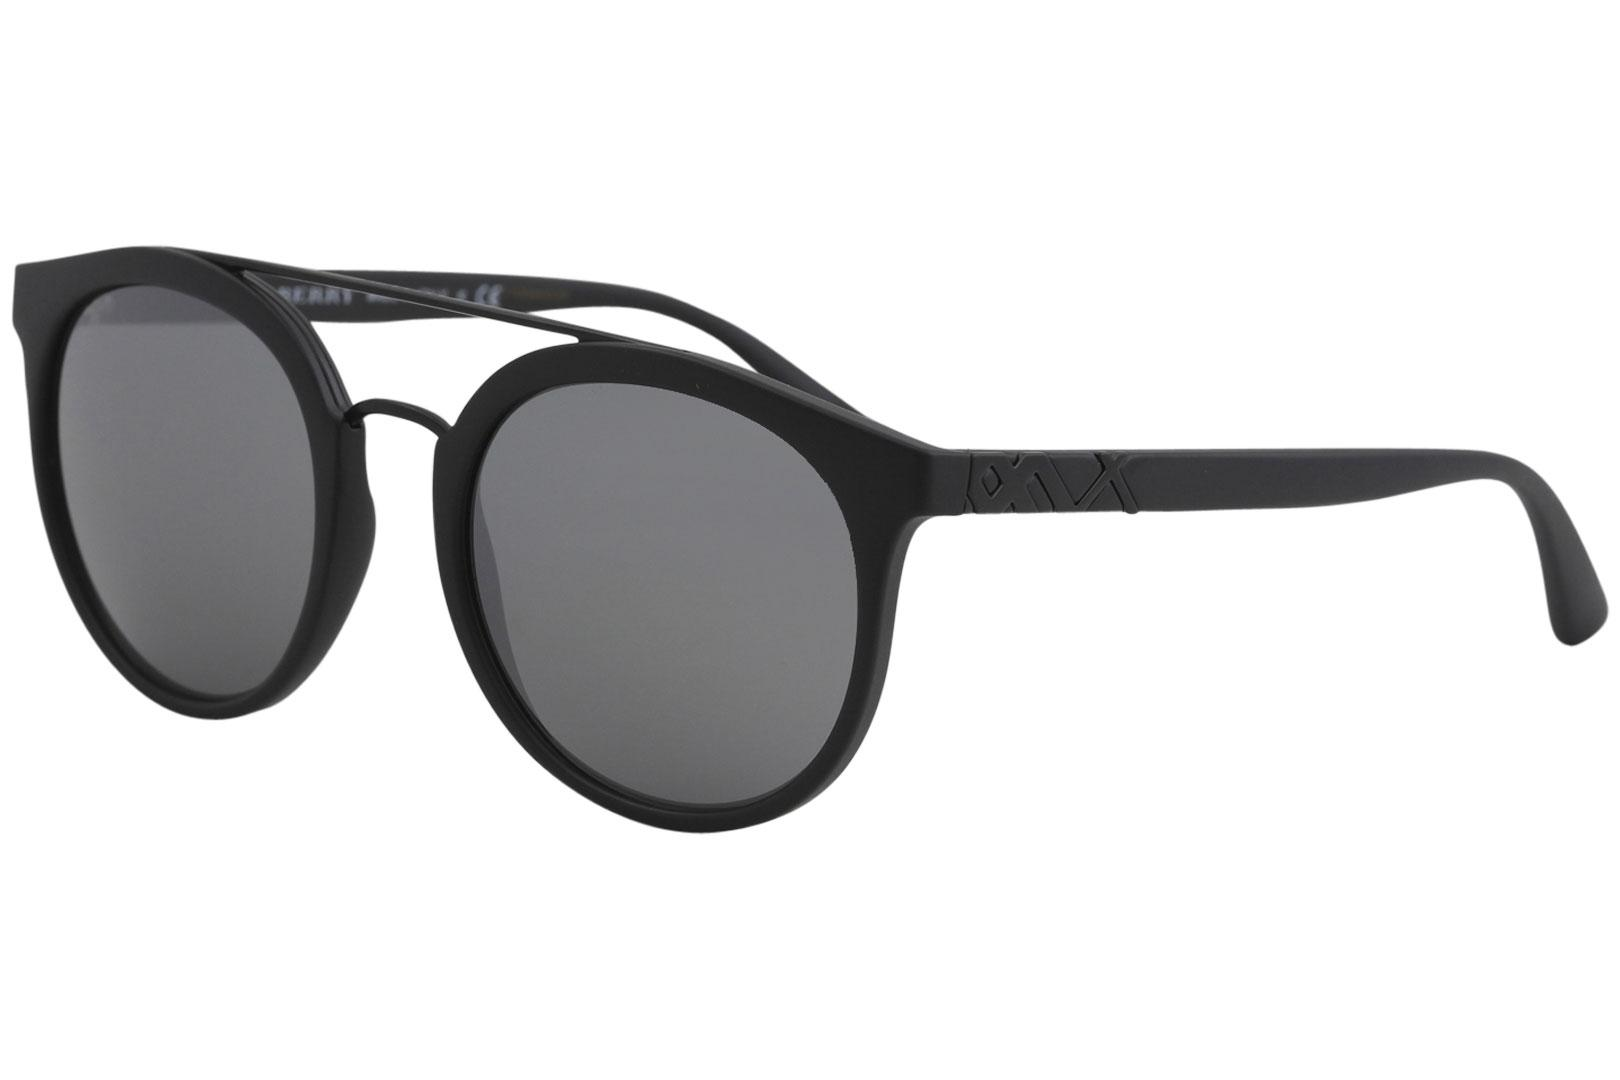 ffb243cde6 Burberry Men s BE4245 BE 4245 Fashion Round Sunglasses